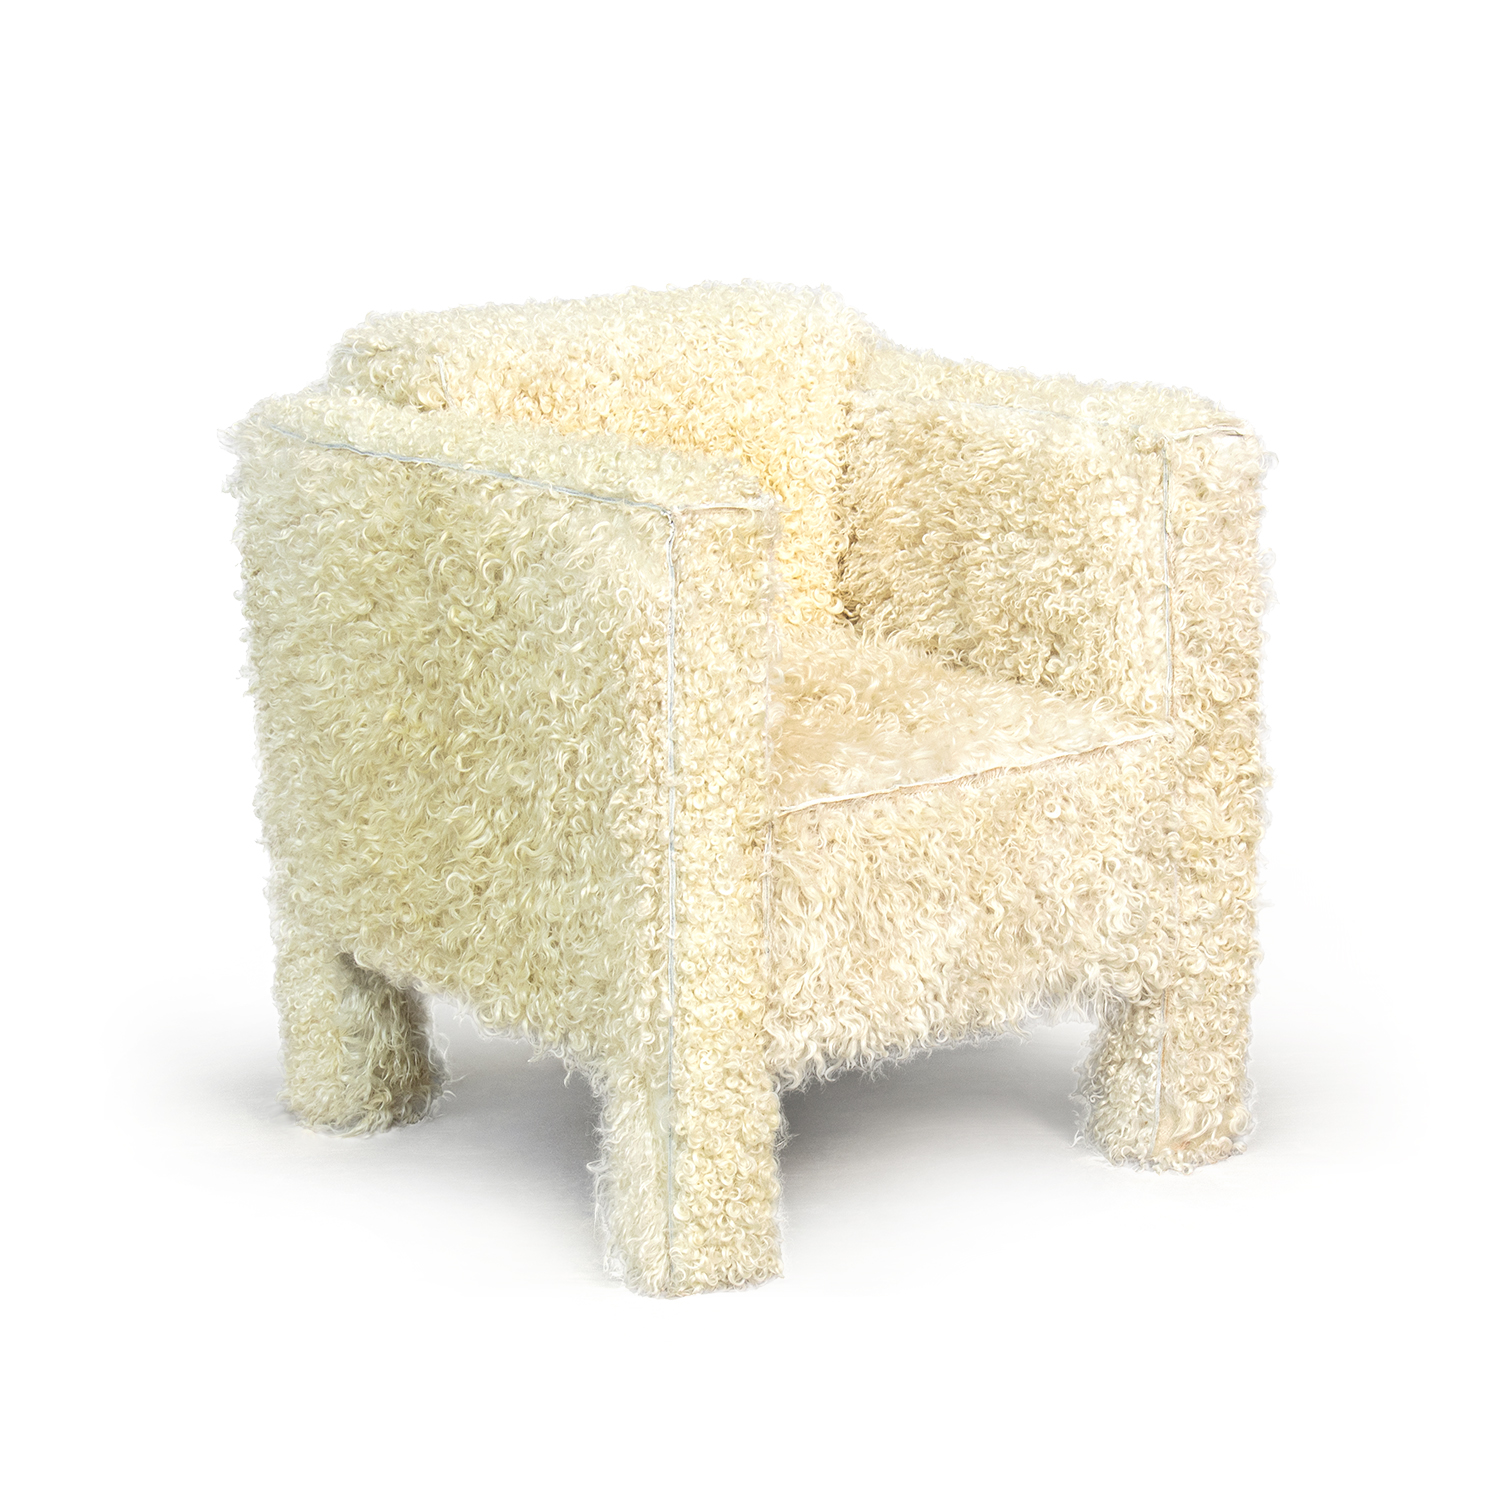 02_Goat_Chair_perspective01_THUMBNAIL